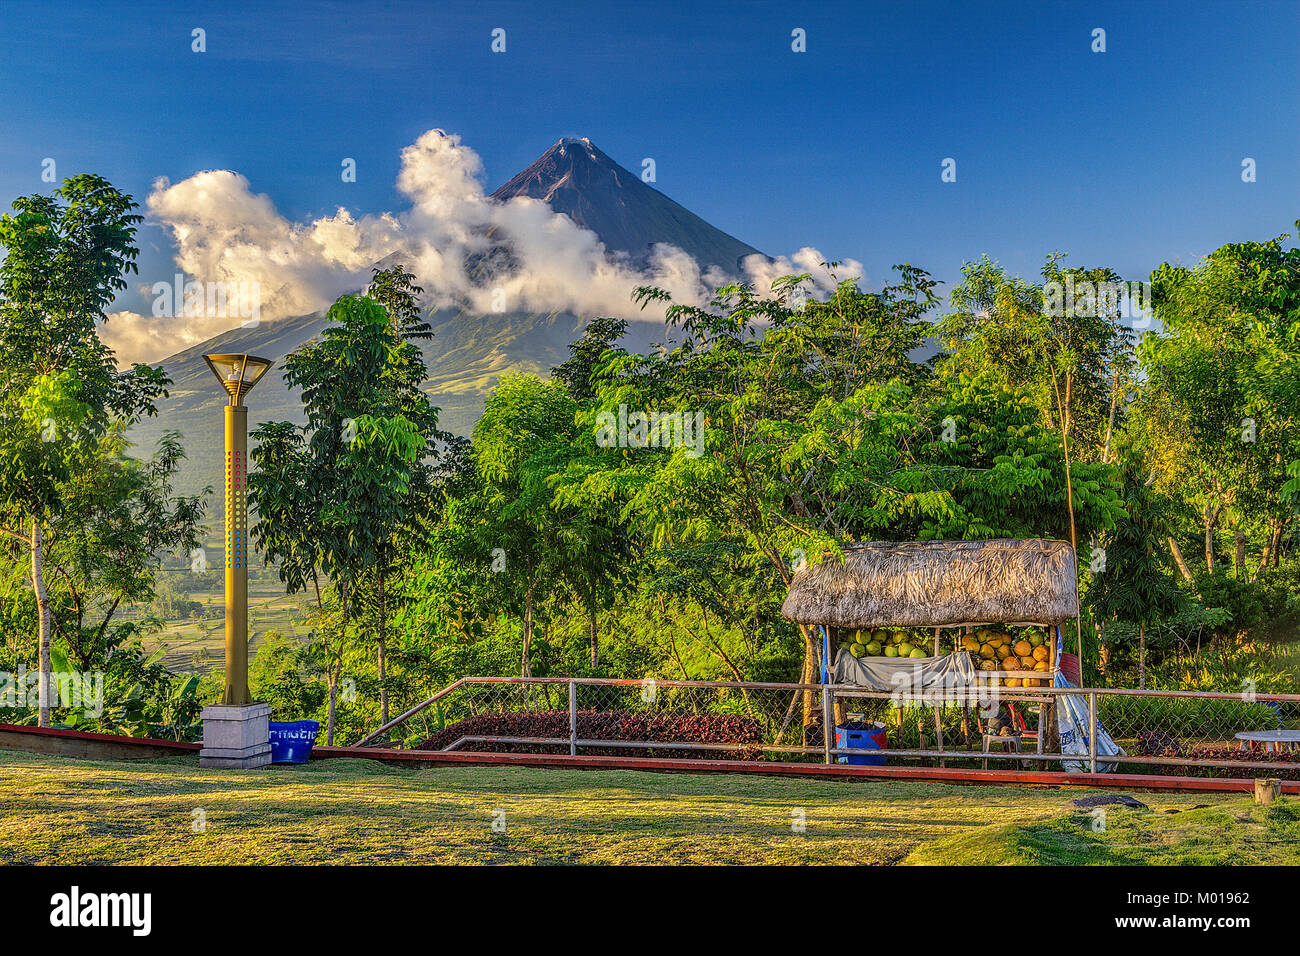 Mount Mayon stratovolcano viewed from the Mount Mayon Natural Park viewing area in Central Bikol area of Albay Region - Stock Image